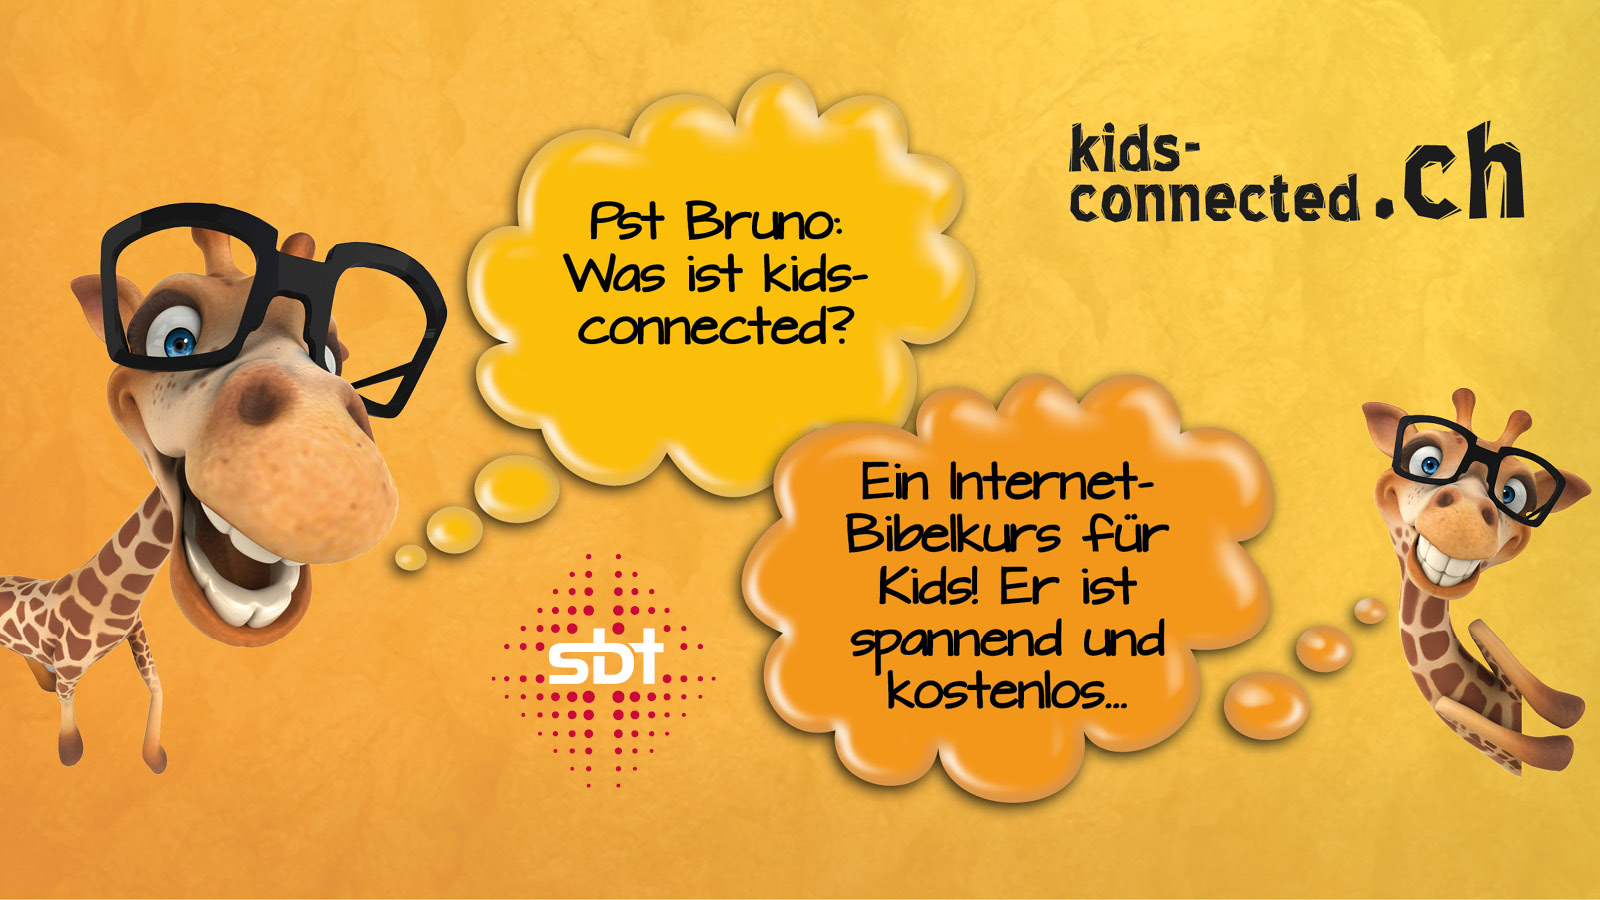 kids-connected.ch